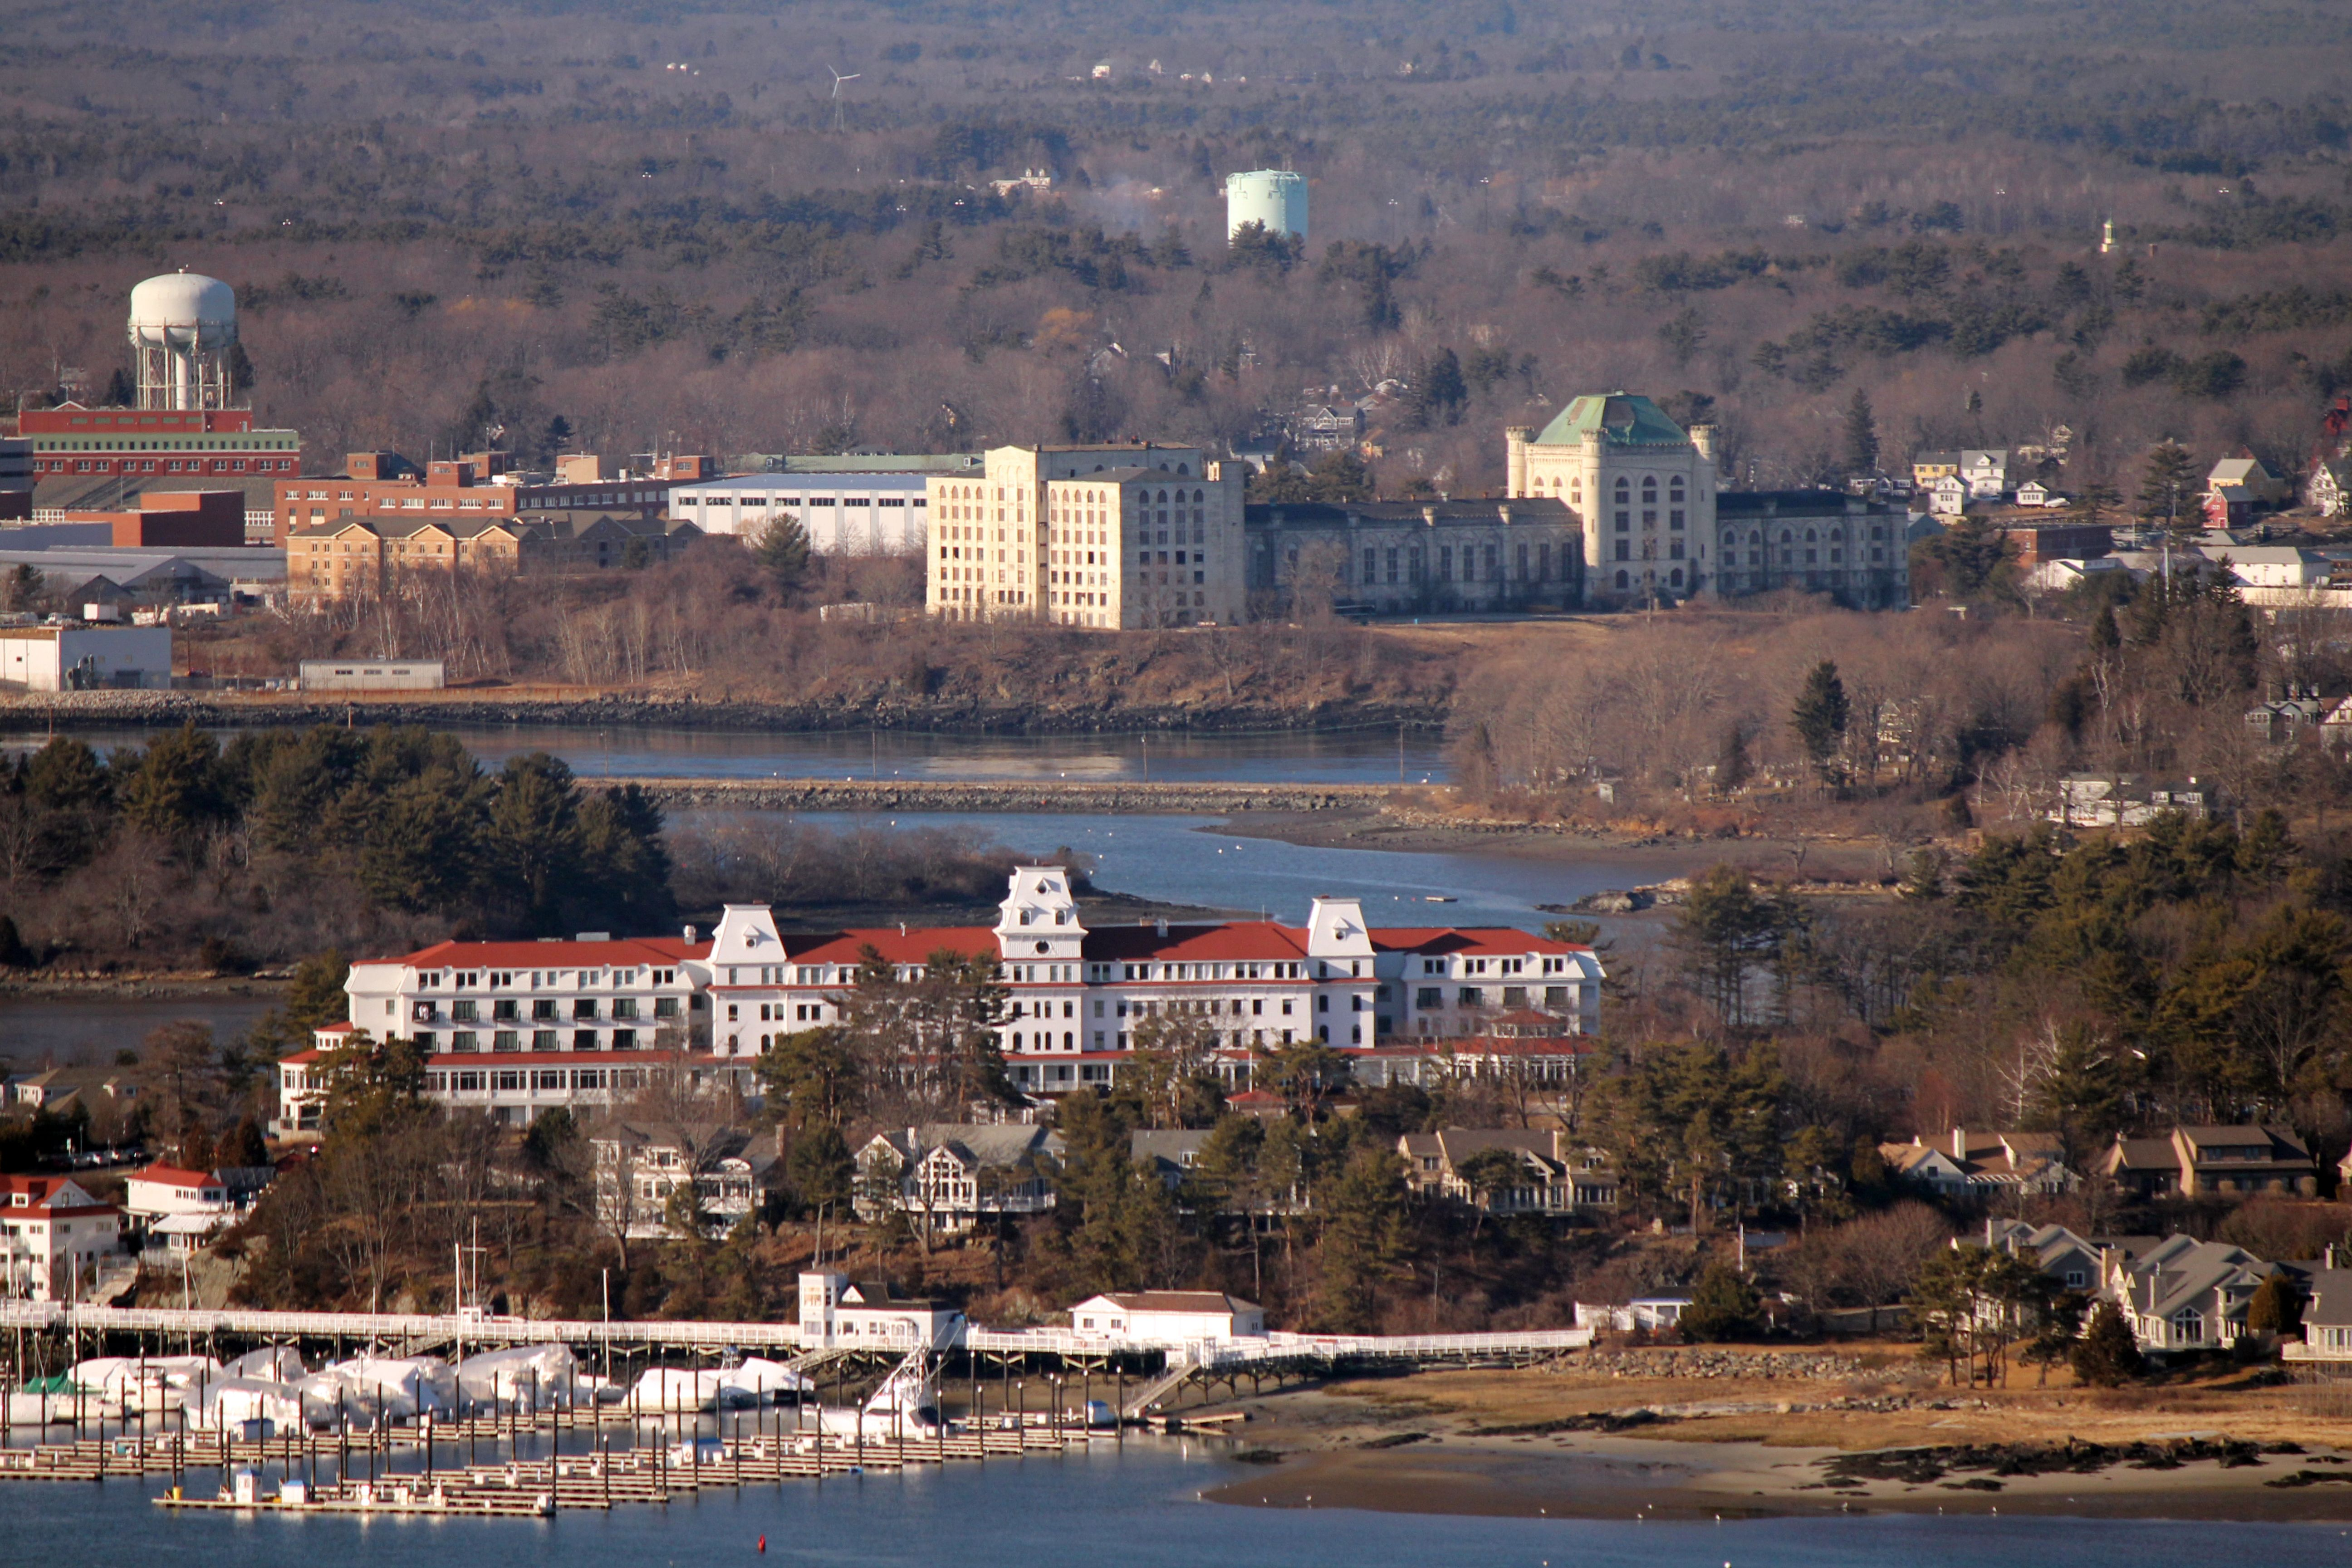 The Wentworth By Sea Hotel In New Castle Nh With Old Prison At Portsmouth Naval Shipyard Kittery Maine Background